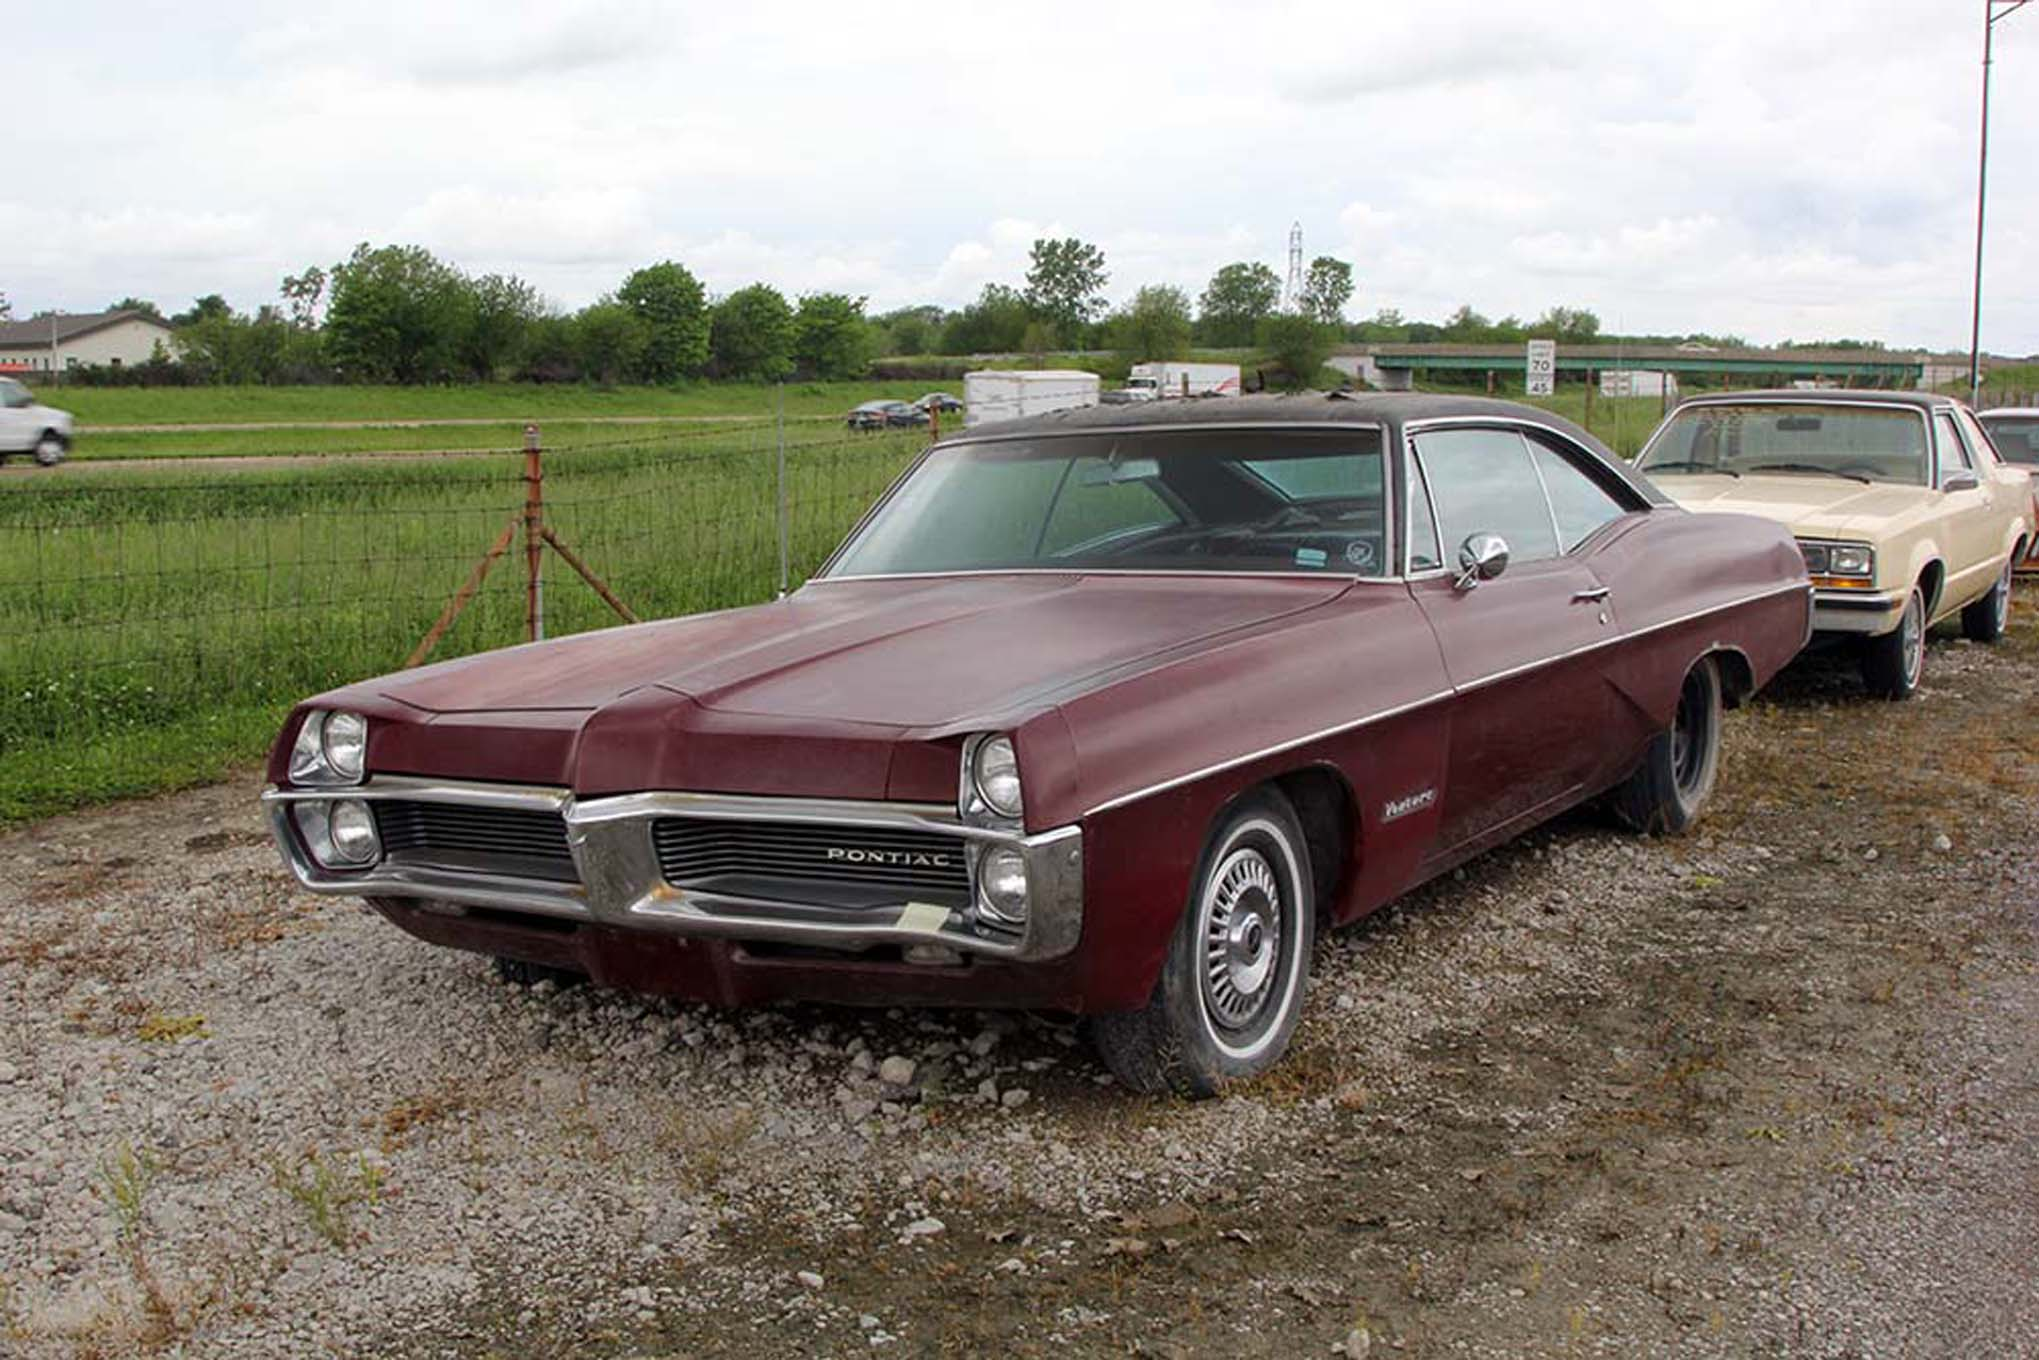 Old Cars for Sale Near Me Lovely Huge Lot Of Vintage Cars for Sale In Illinois Hot Rod Network